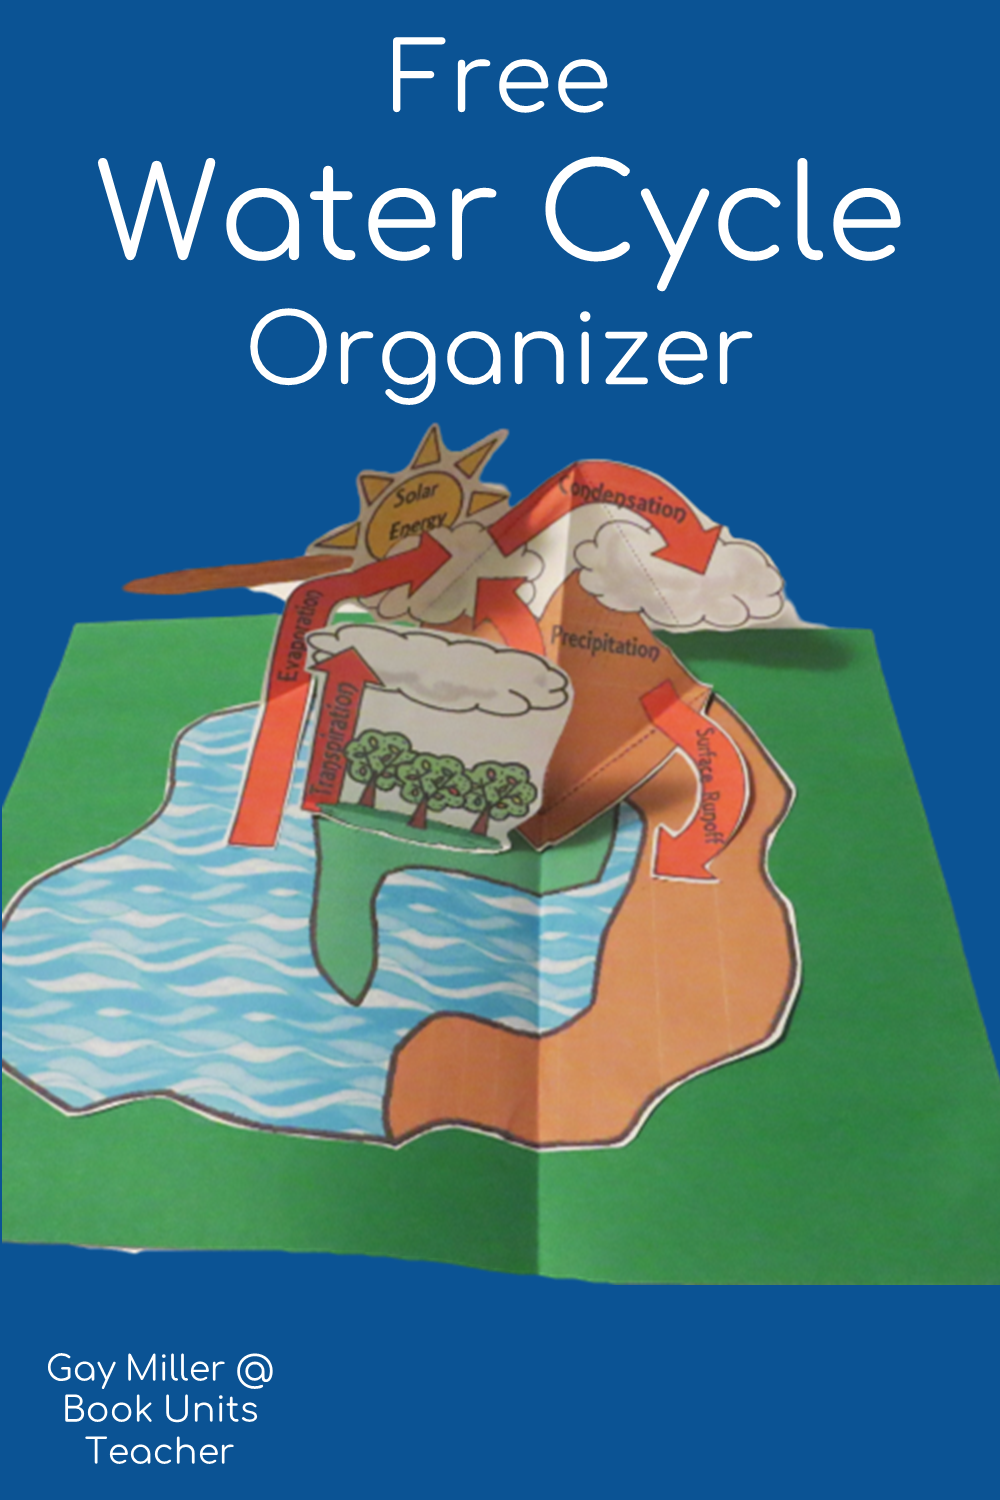 Free Interactive Science Organizers - Water Cycle Organizers